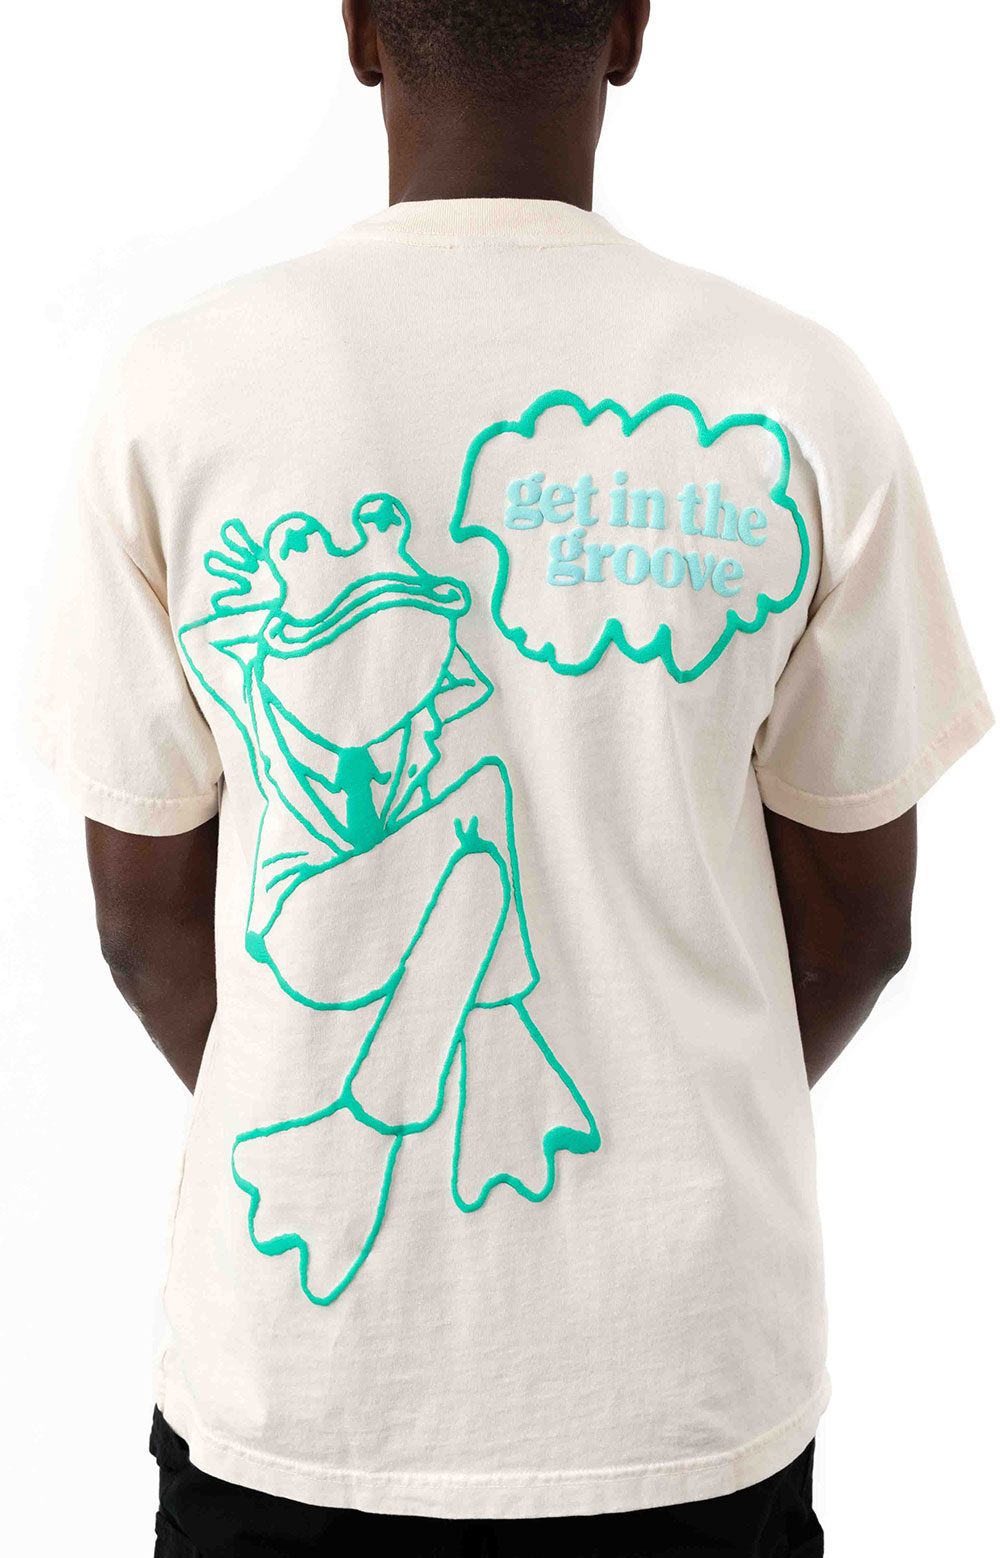 Get In The Groove T-Shirt - Sago 3